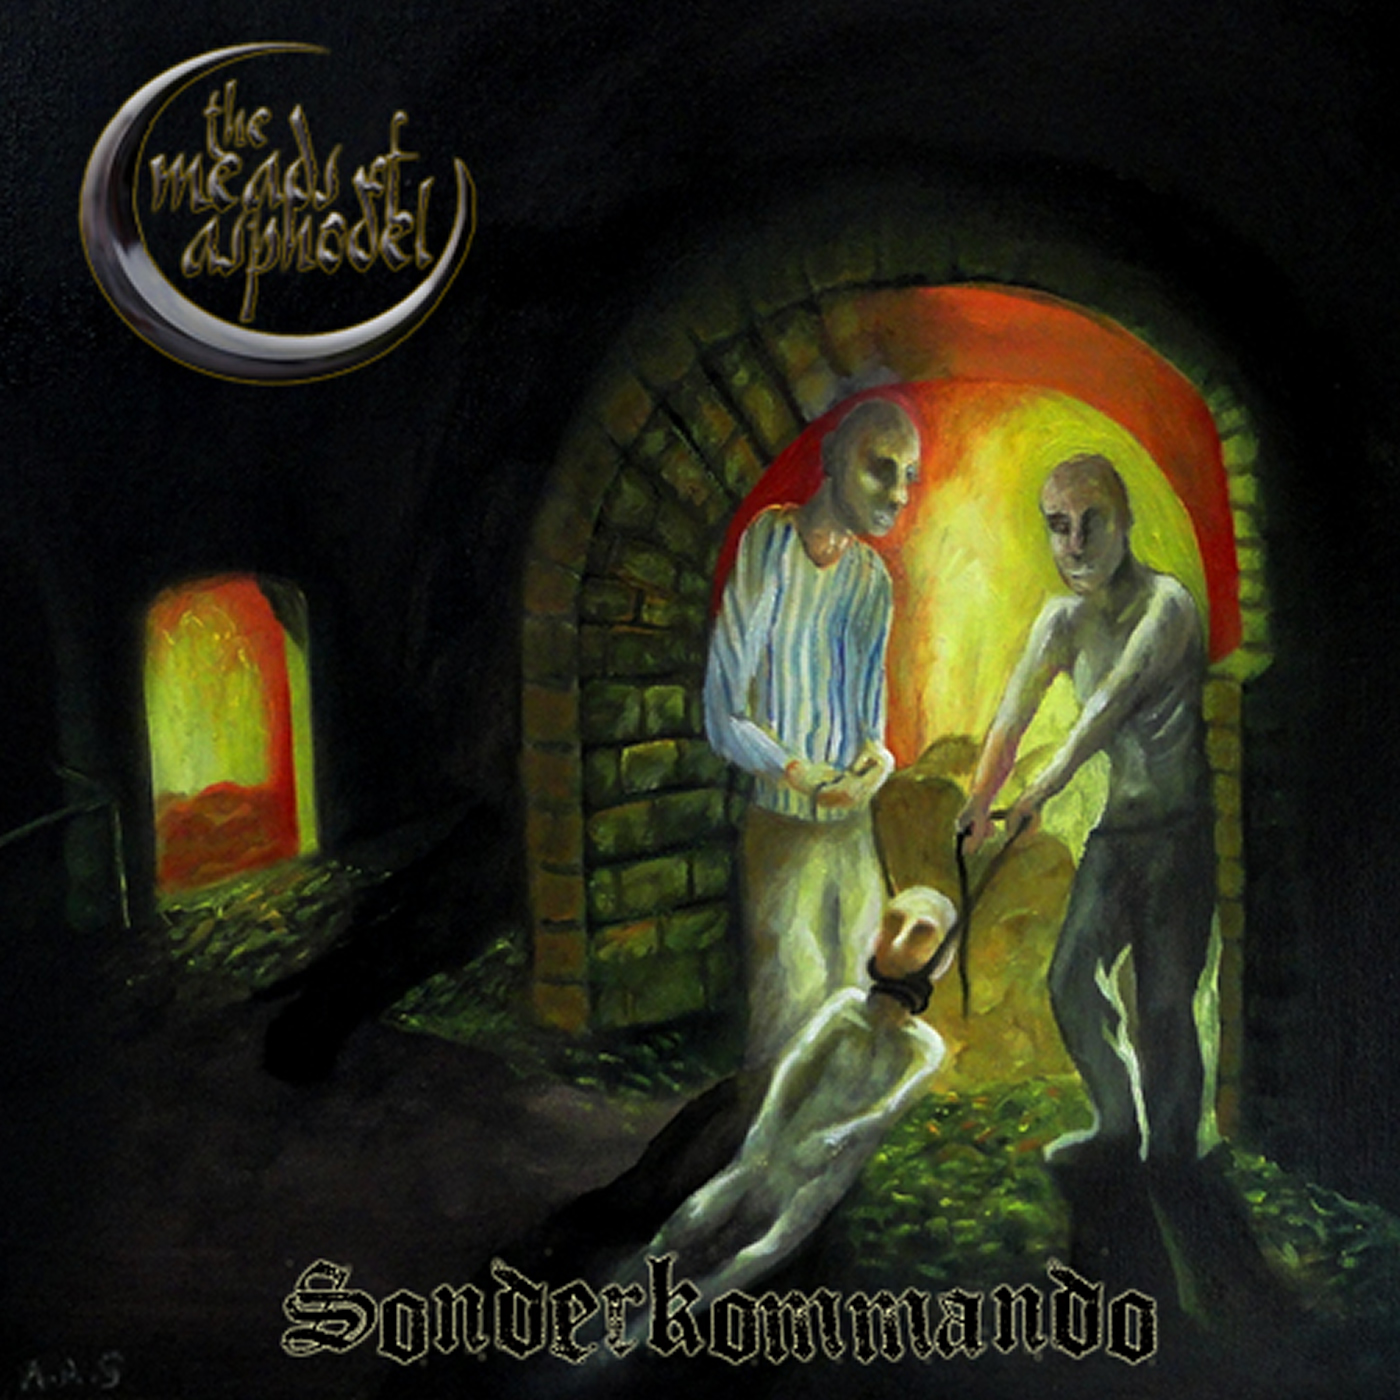 The Meads Of Asphodel – Sonderkommando